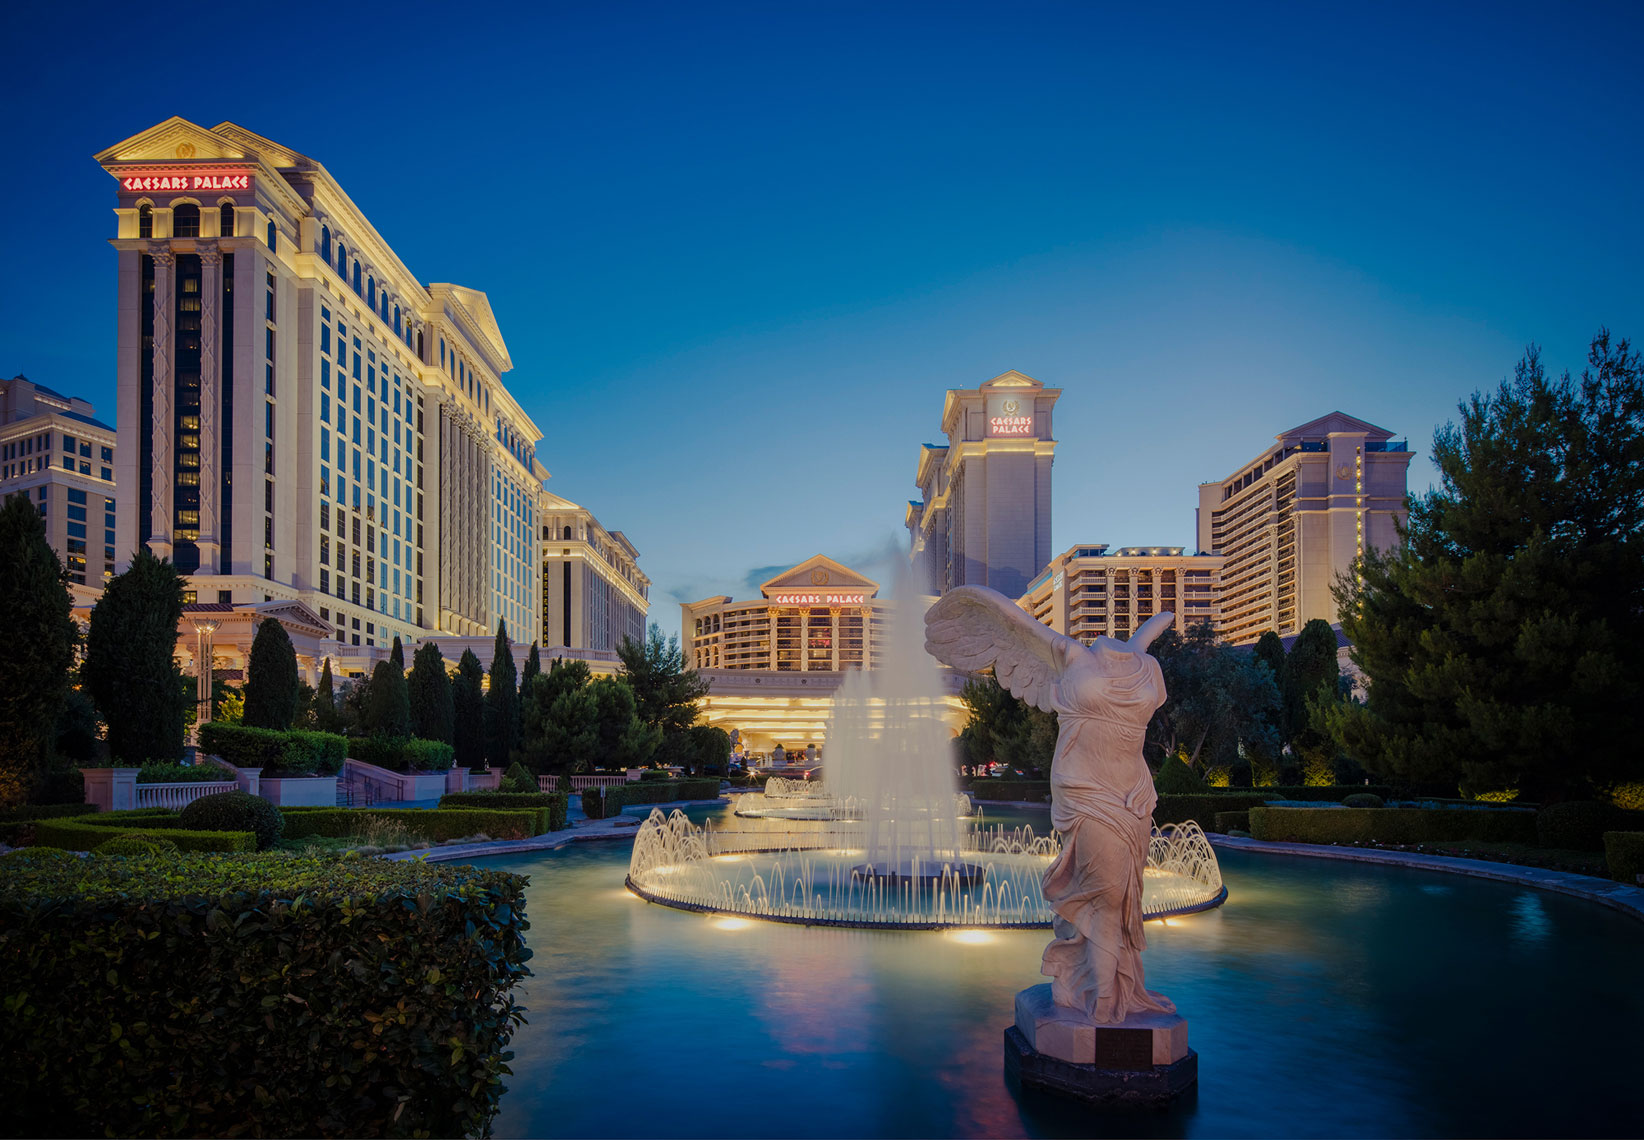 jeff-green-resort-exterior-caesars-palace-las-vegas